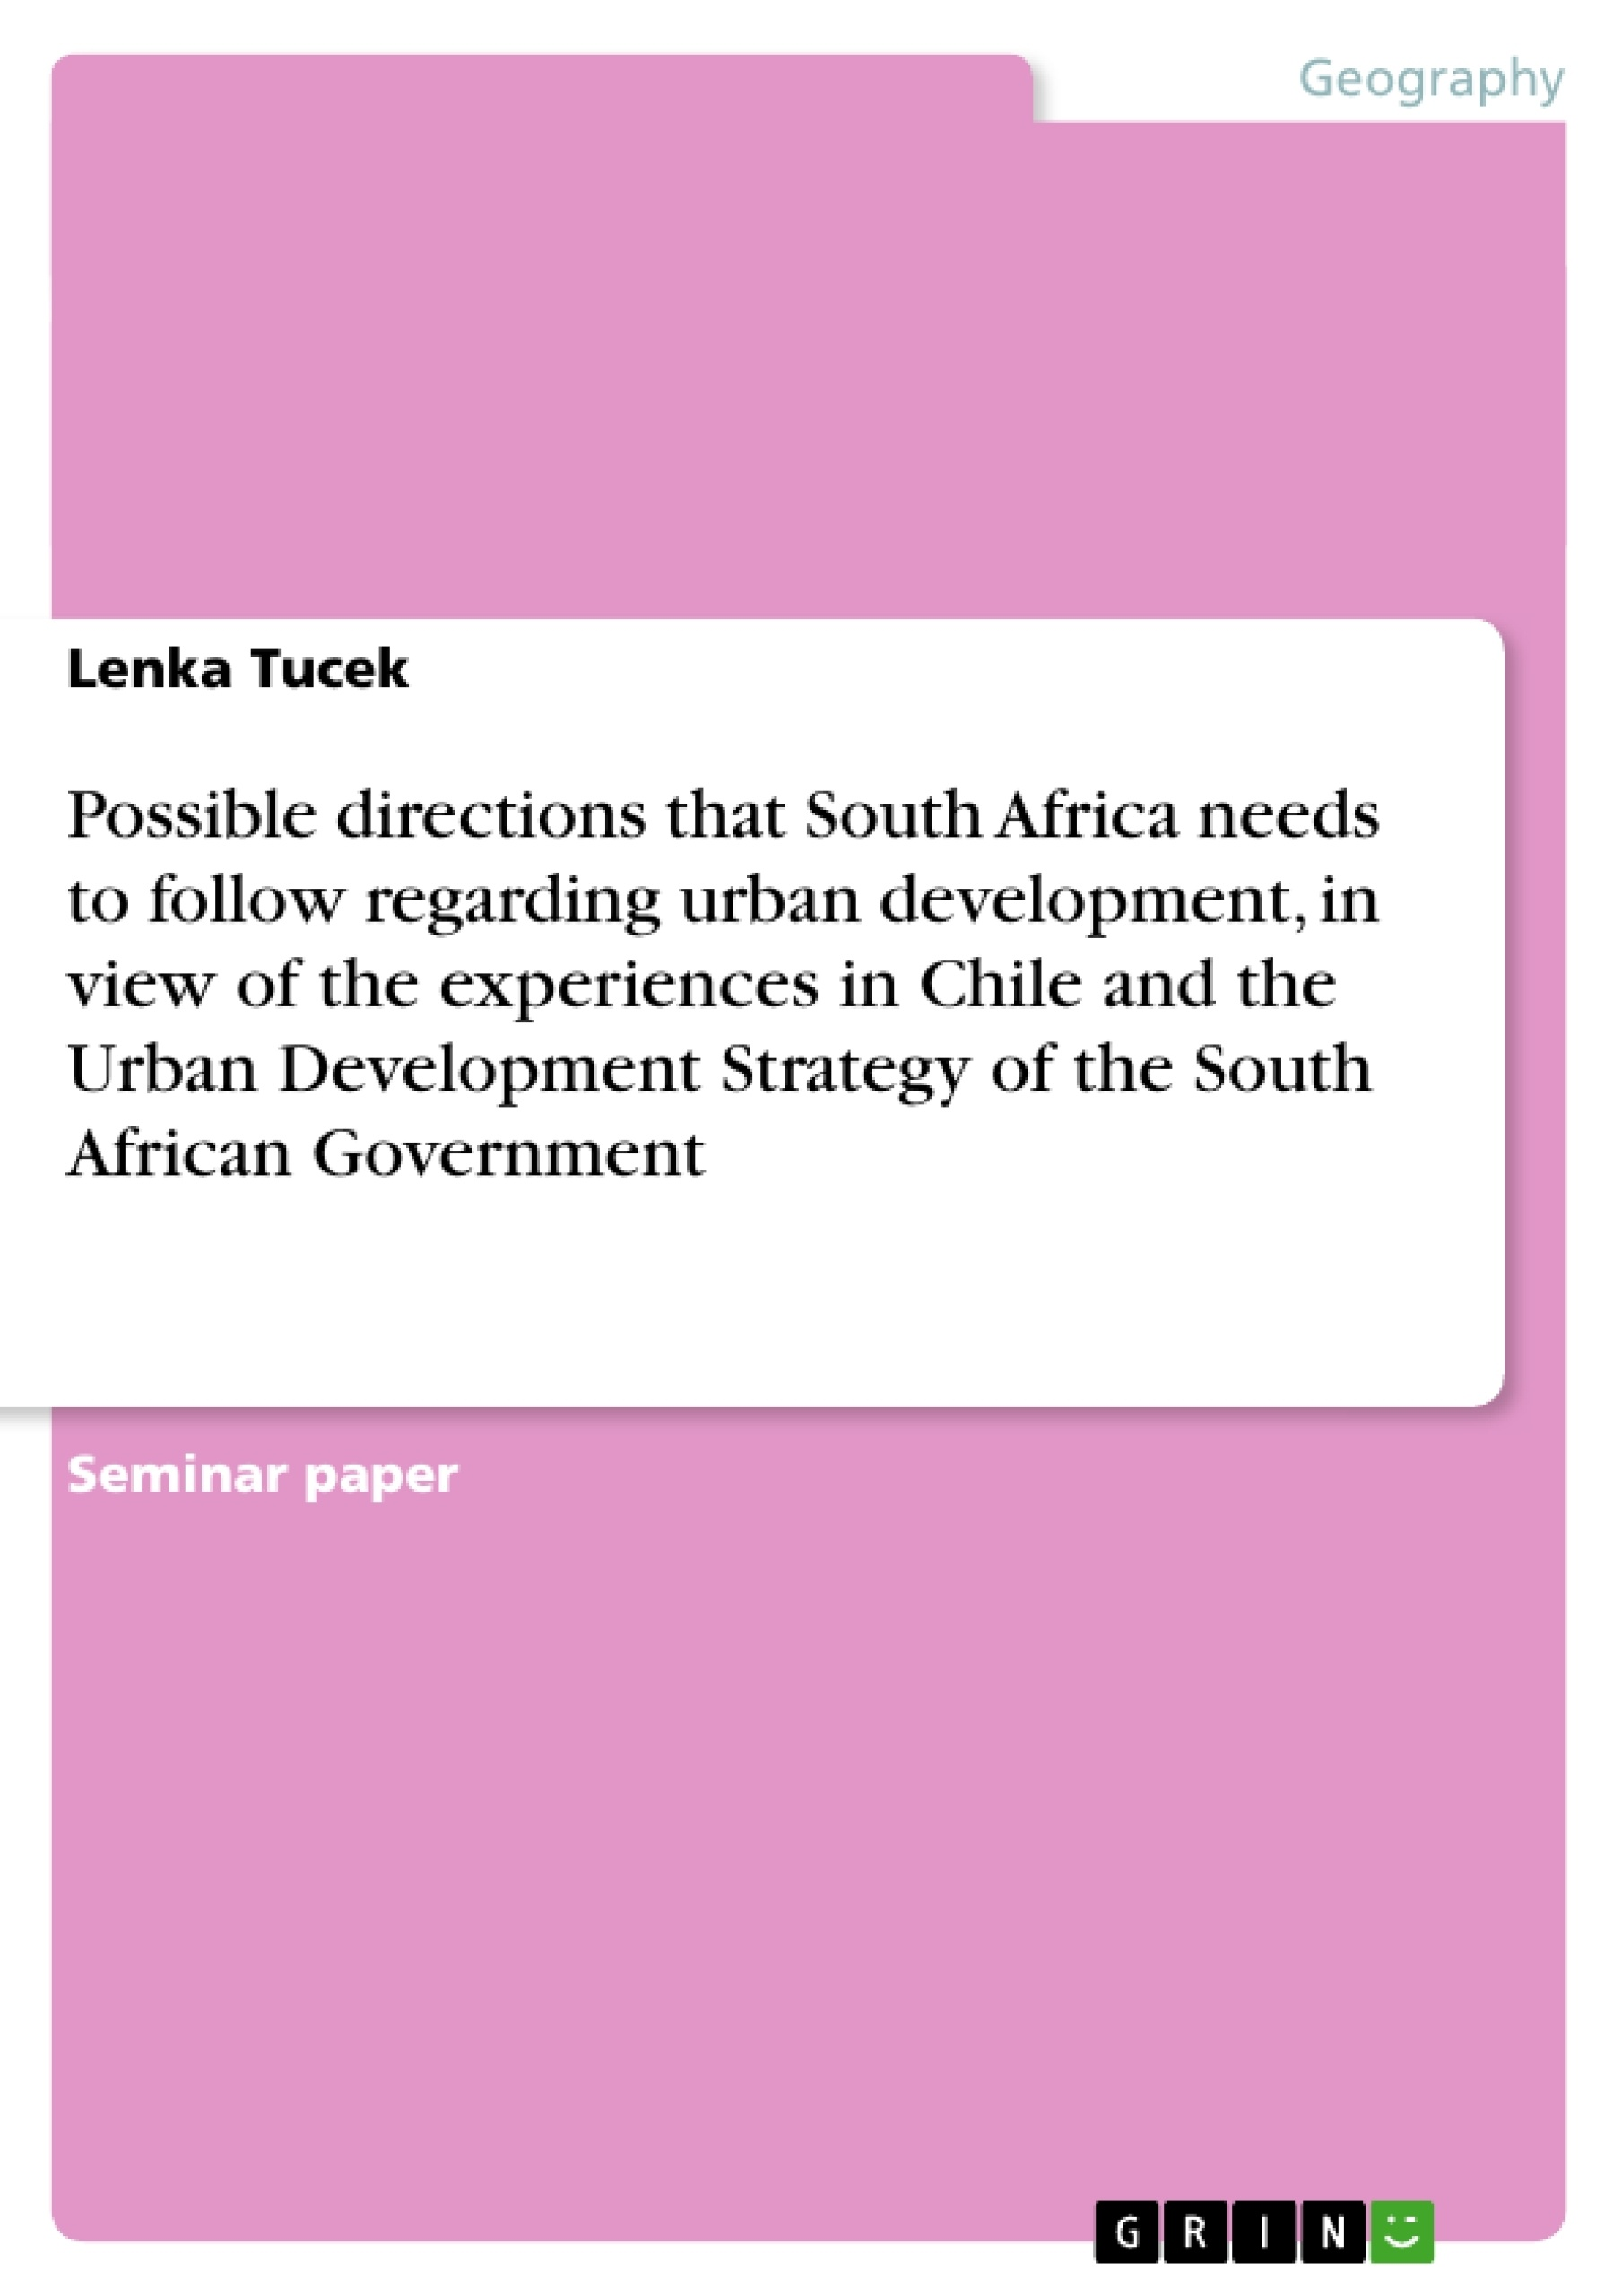 Title: Possible directions that South Africa needs to follow regarding urban development, in view of the experiences in Chile and the Urban Development Strategy of the South African Government